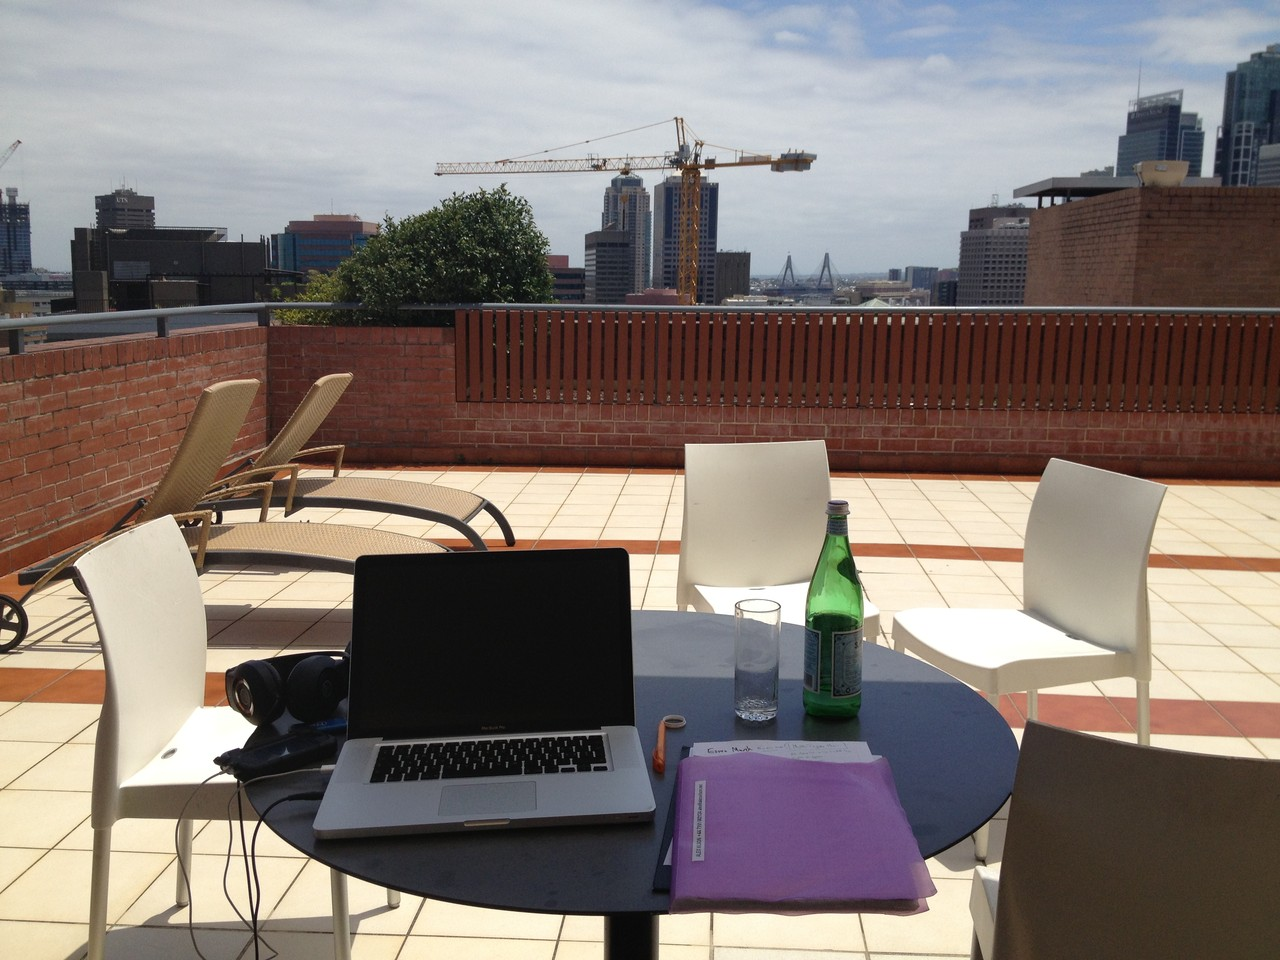 Next morning I set up my workspace, bit nicer than usual! — at Sydney.